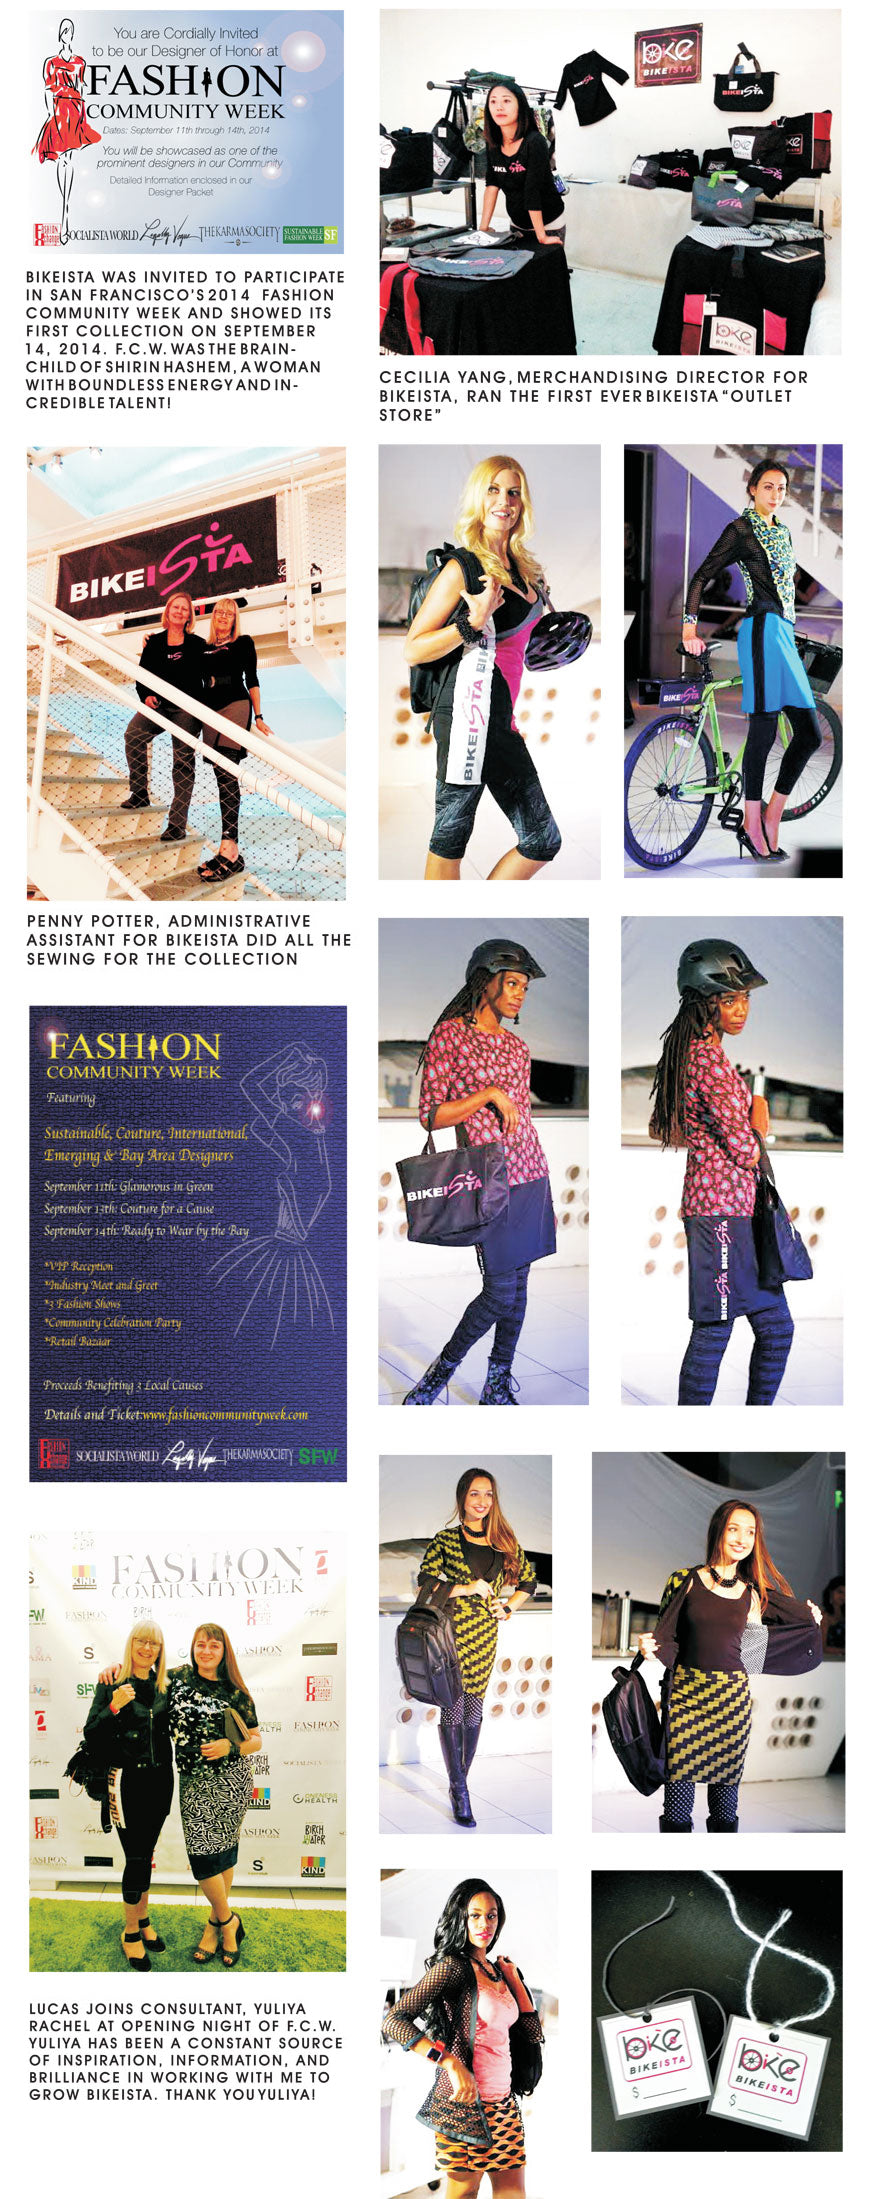 Fasion Community Week 2014